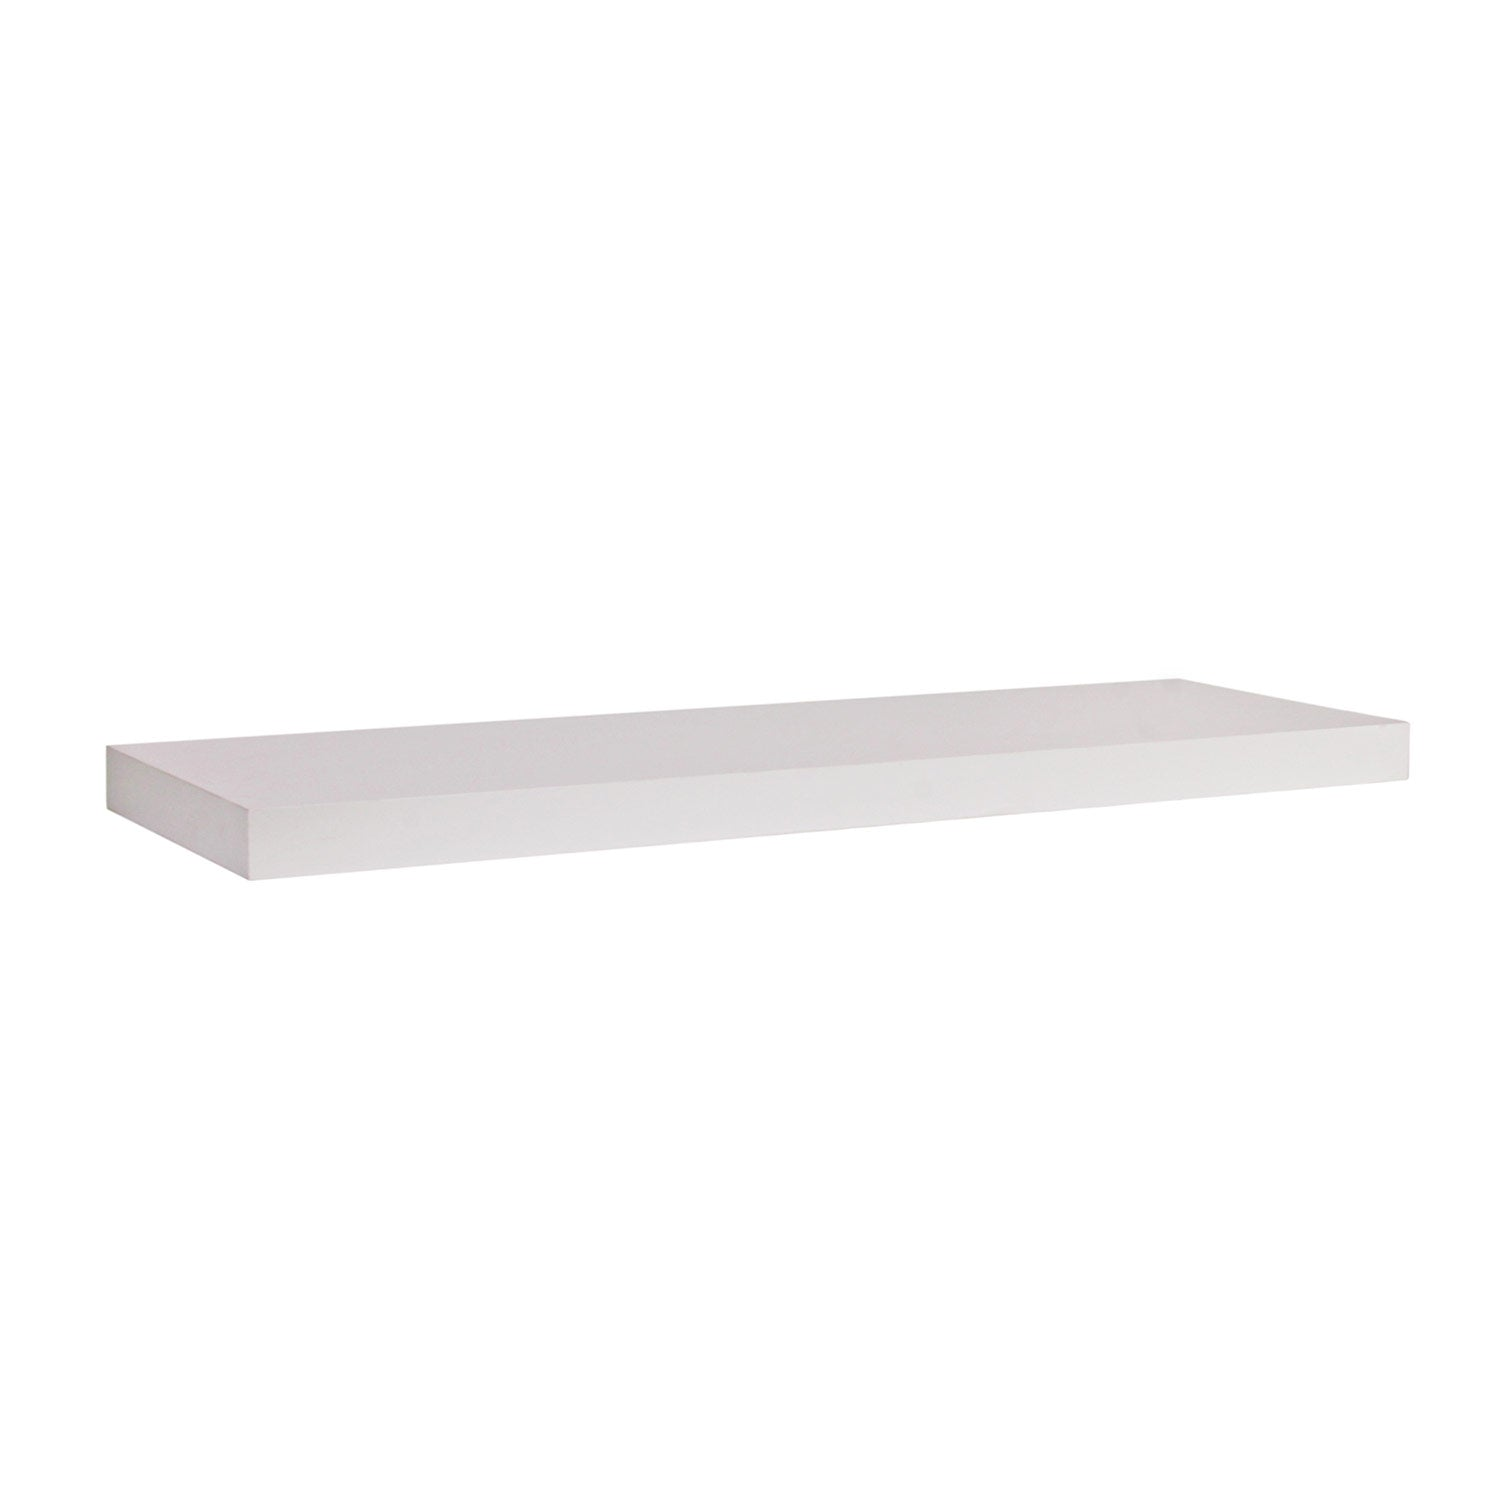 Juno Shelves - Floating Small - White Wood Grain